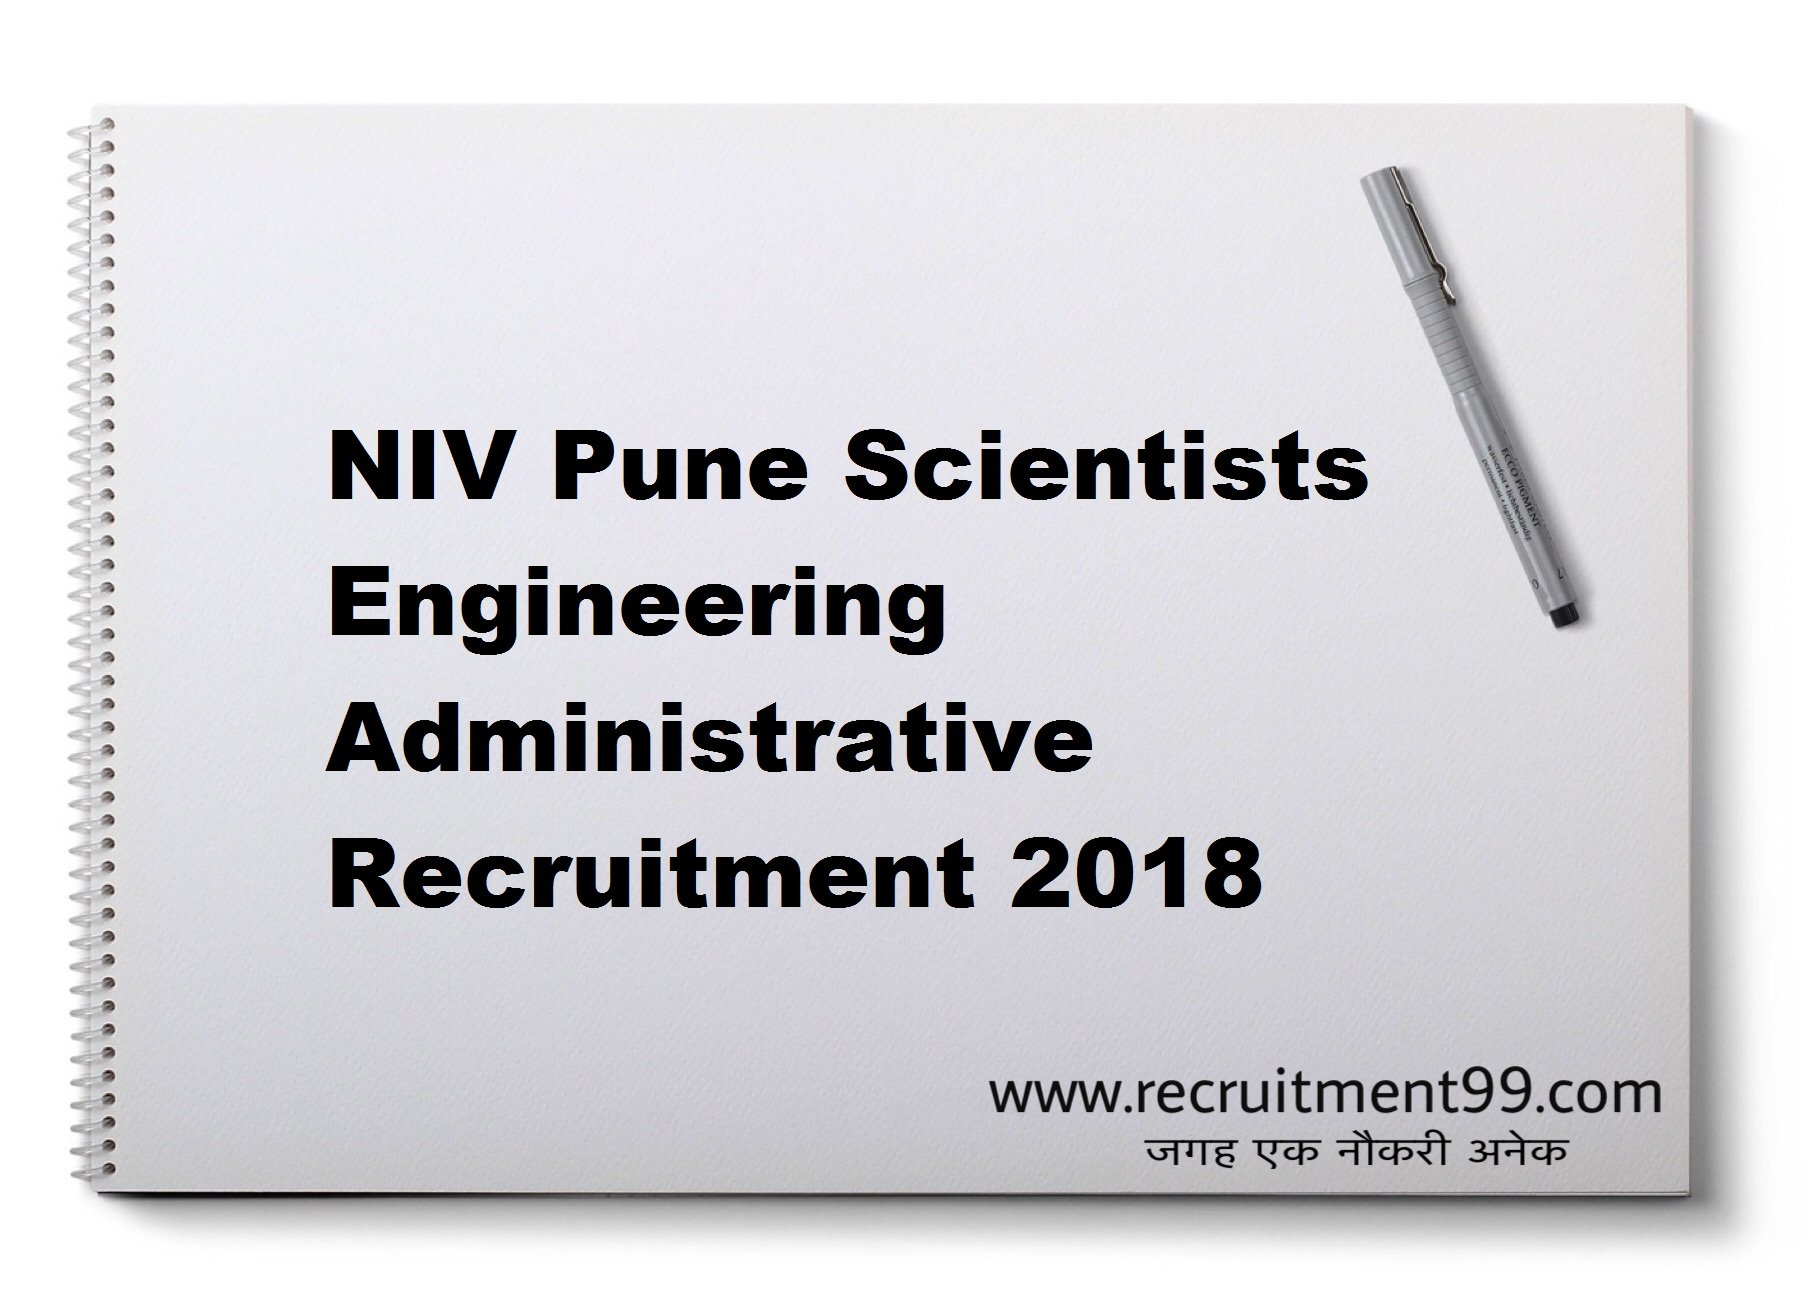 NIV Pune Scientists Engineering Administrative Recruitment Admit Card Result 2018